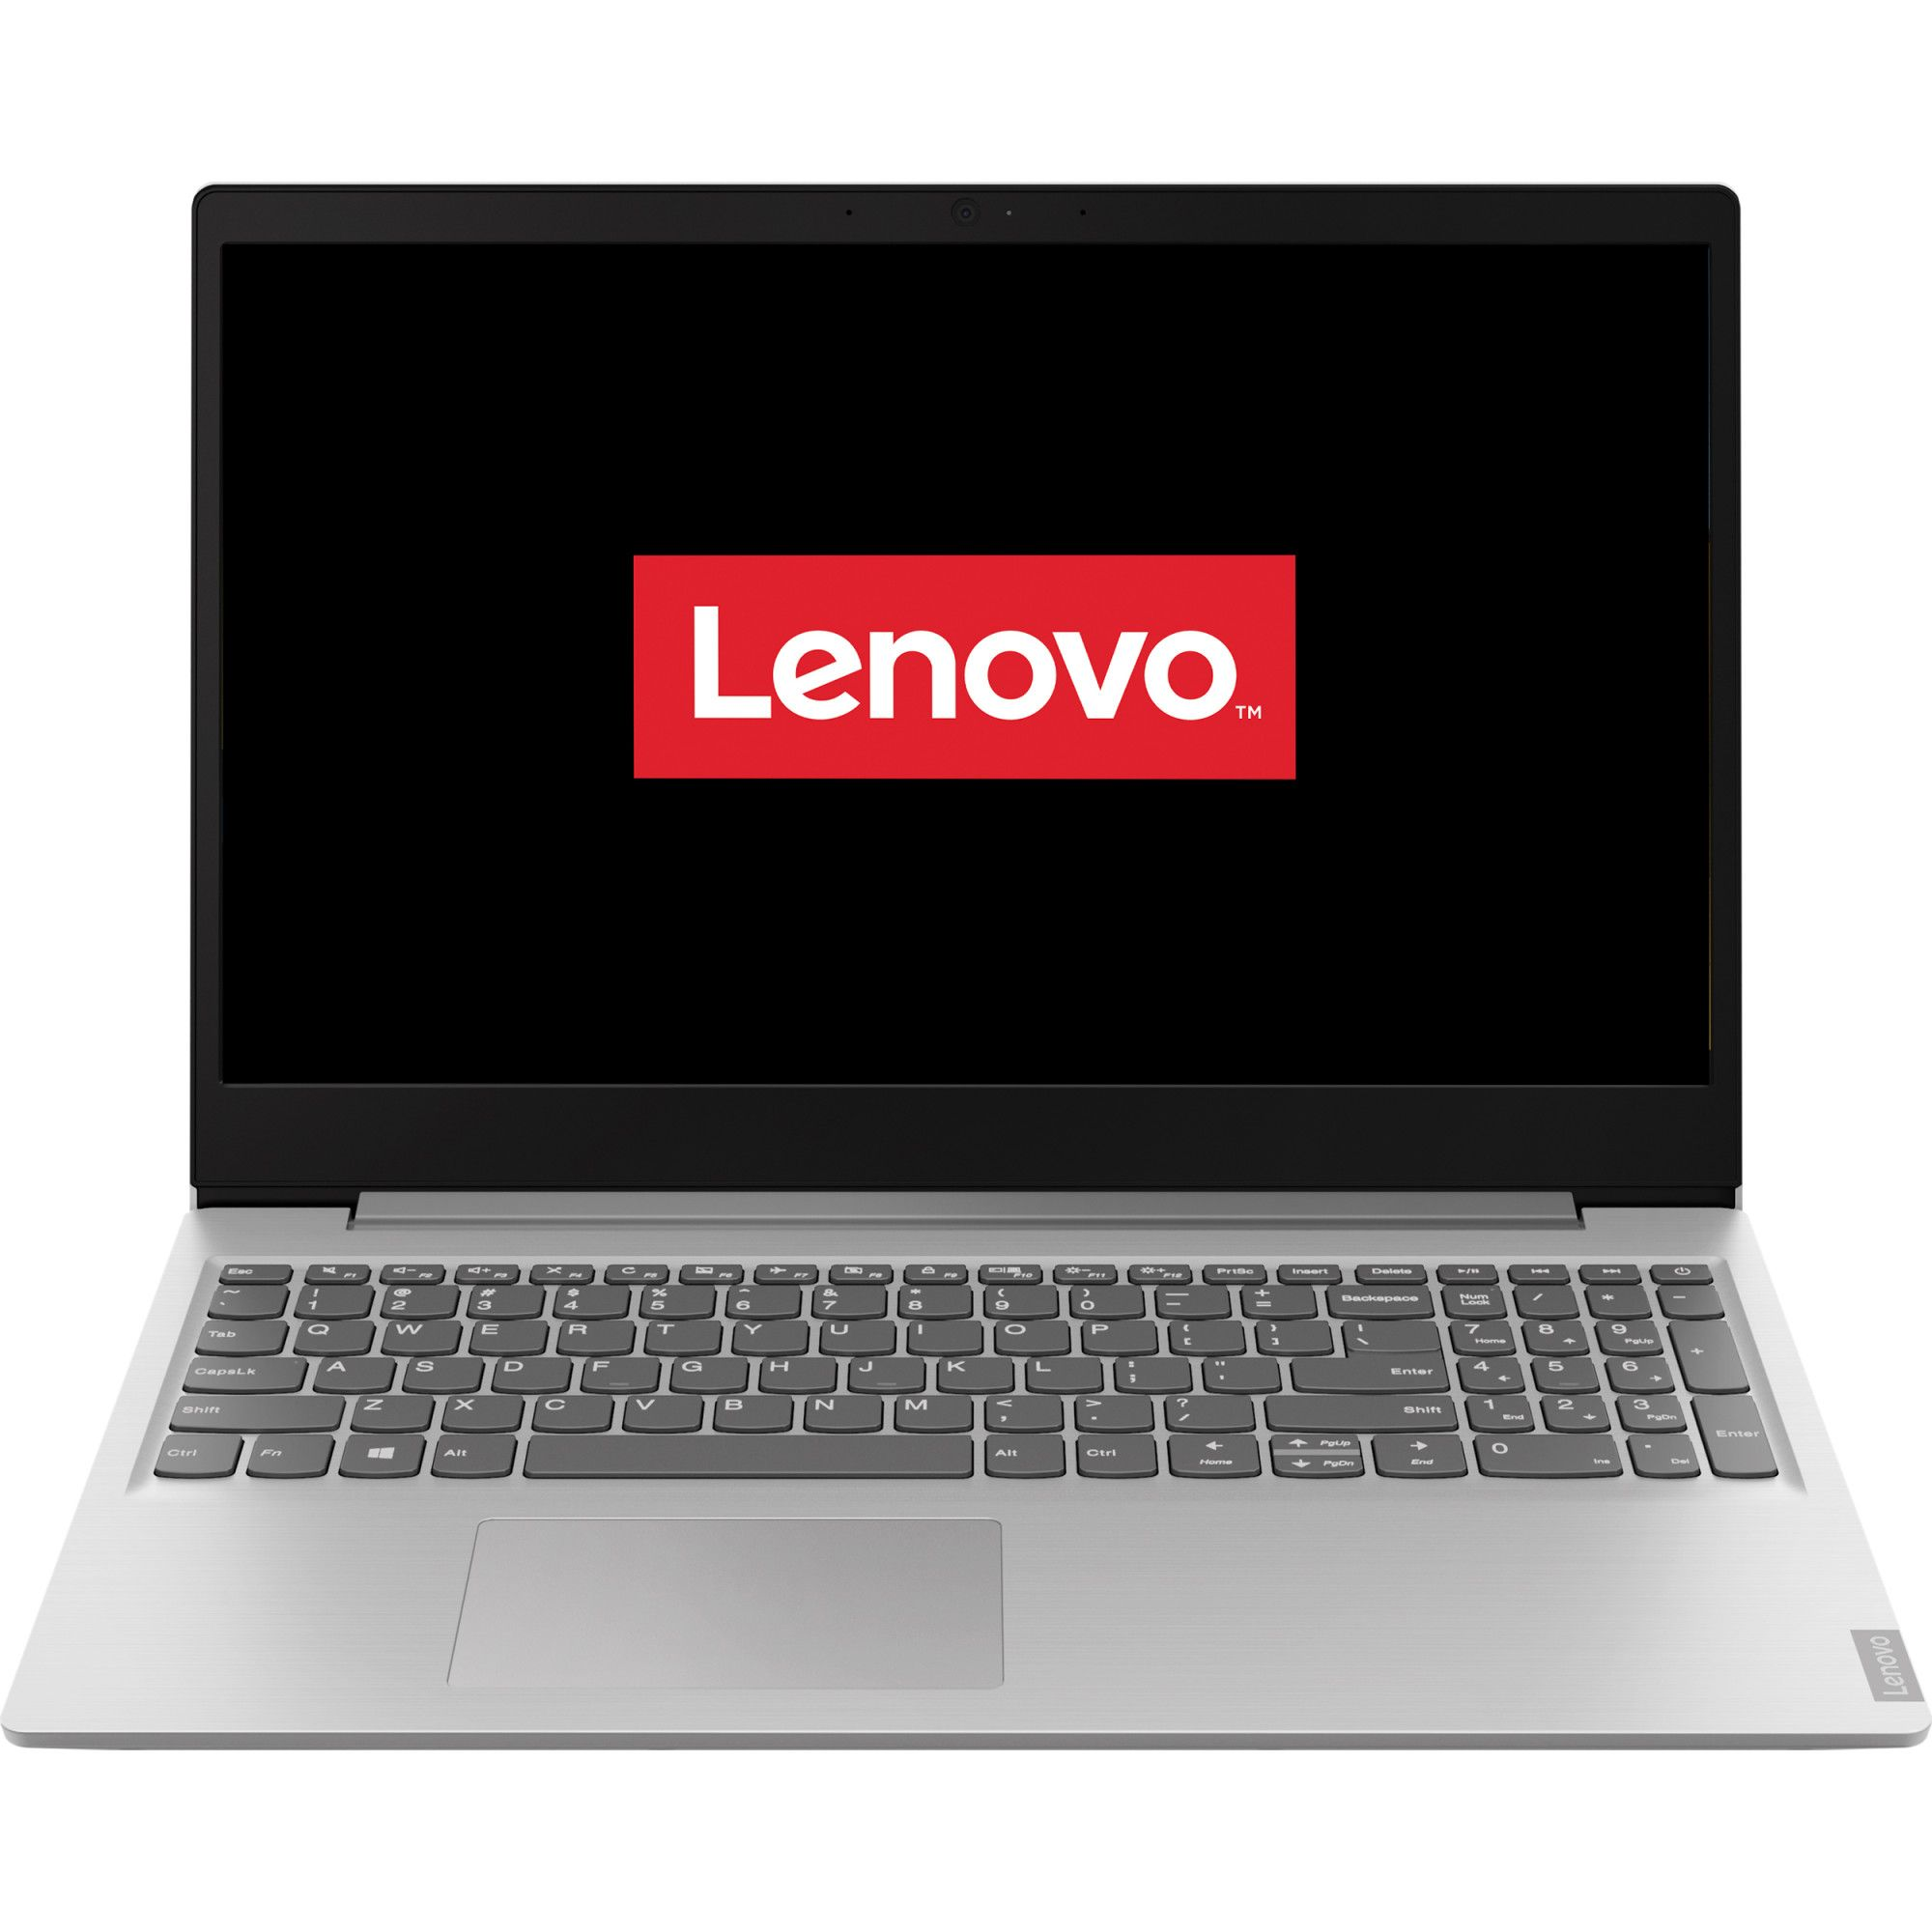 Notebook Lenovo IdeaPad S145 15.6 HD Intel Celeron 4205U RAM 4GB HDD 1TB FreeDOS Gri